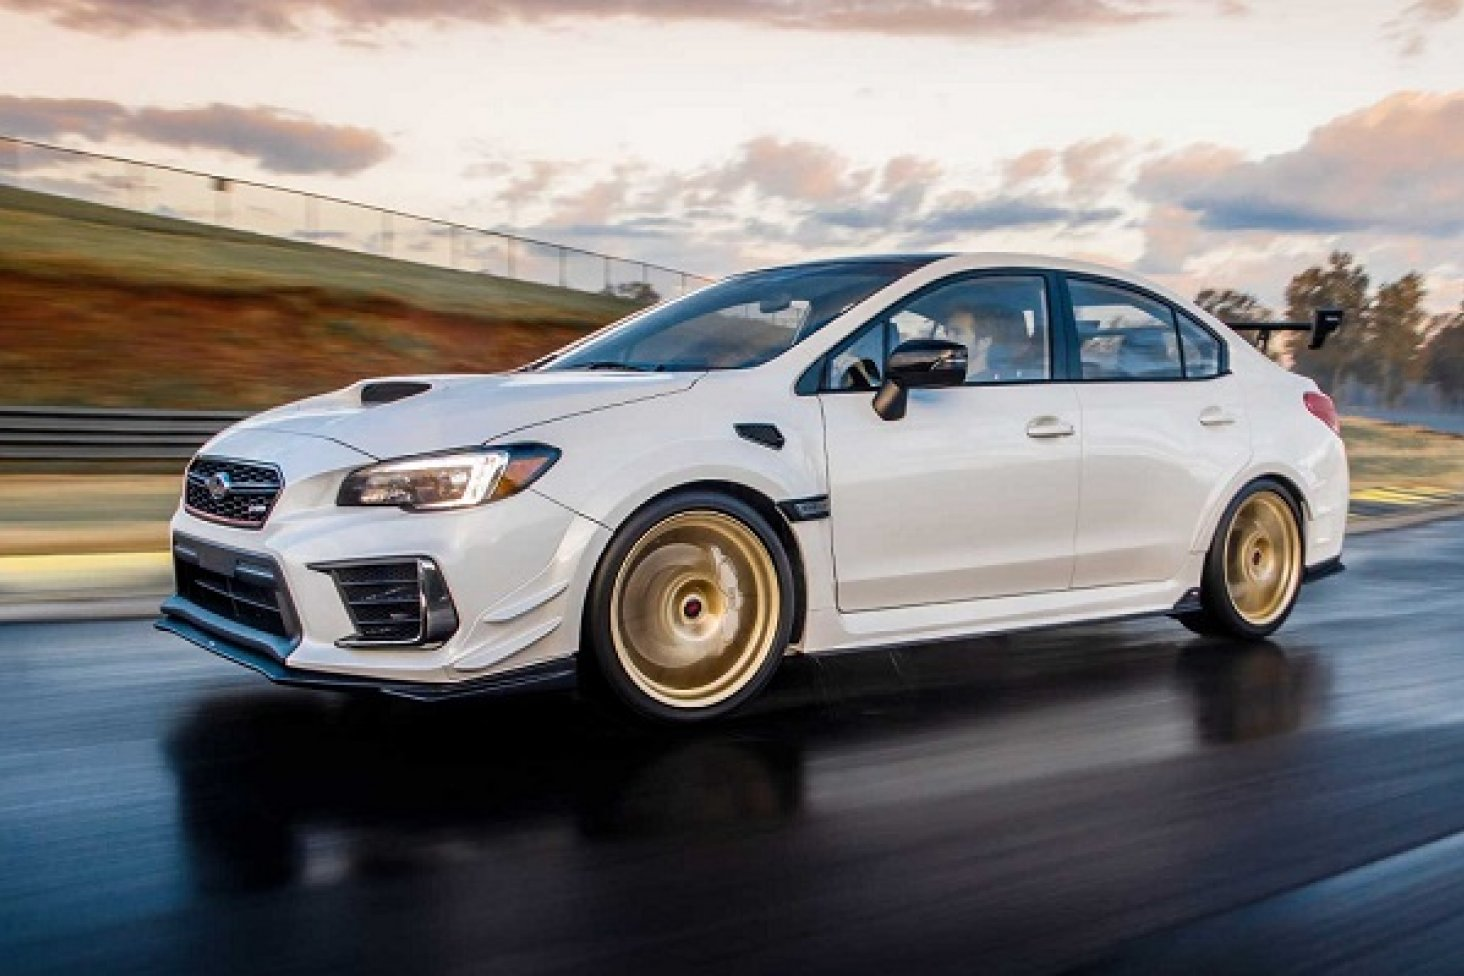 Subaru WRX STI S209 revealed at  at 2019 North American International Auto Show.